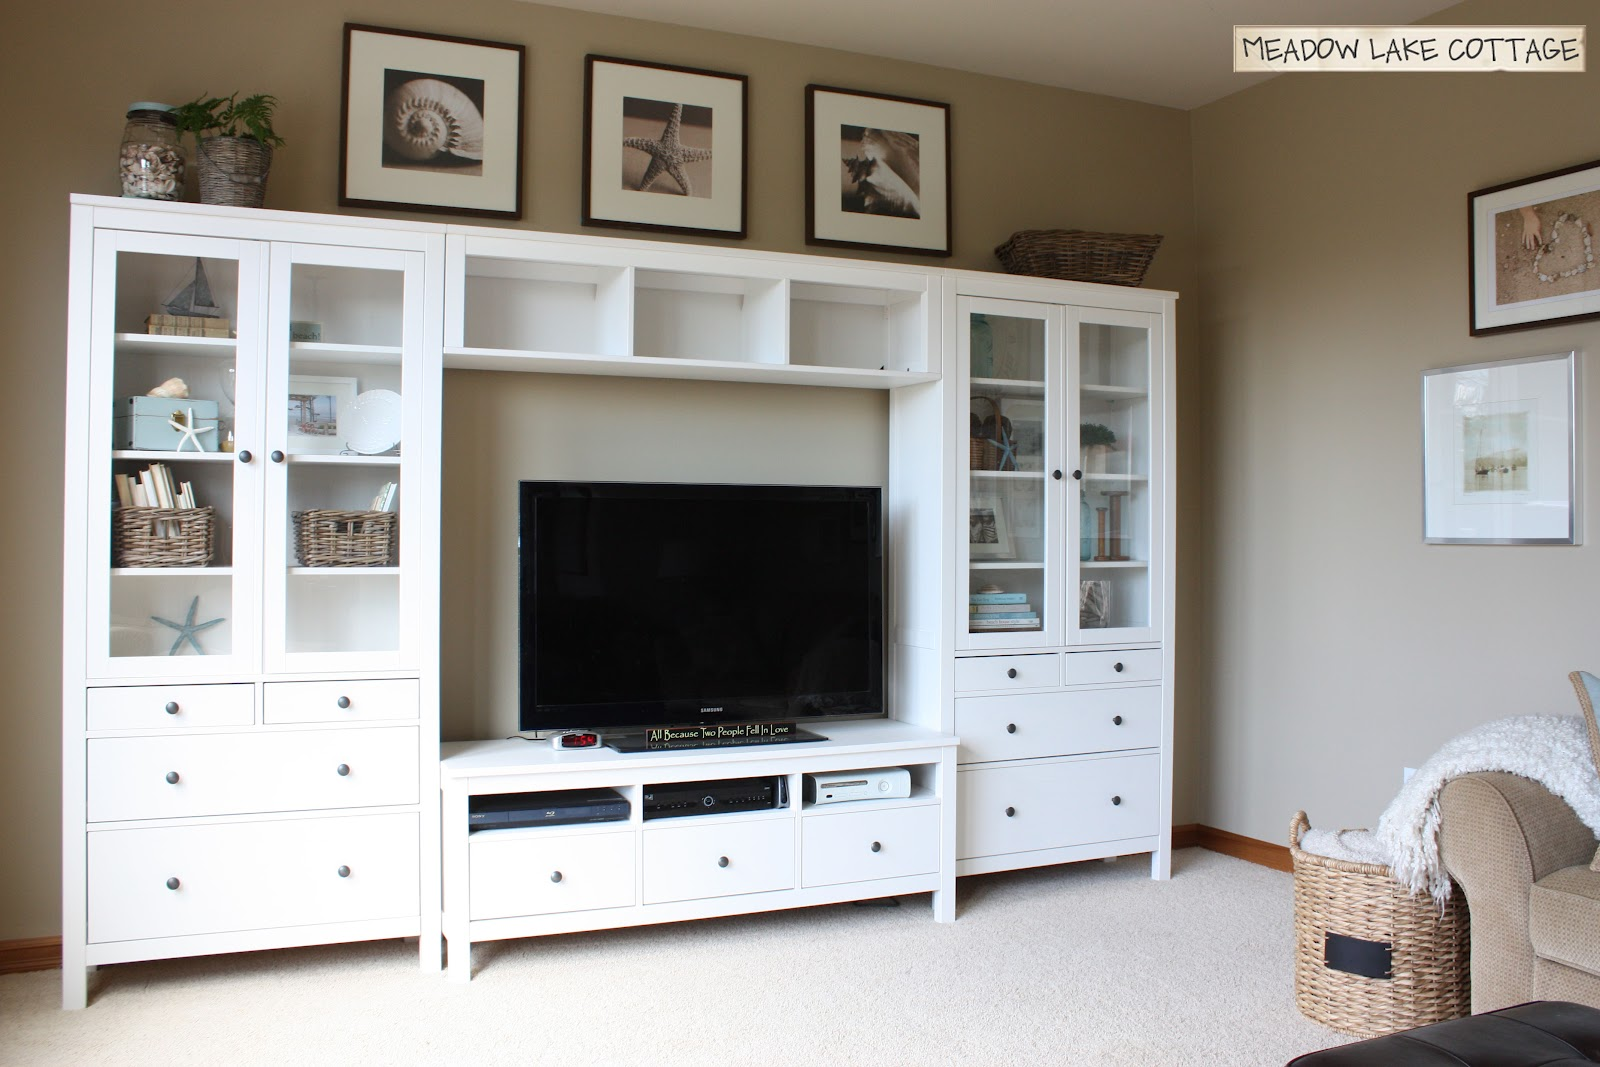 Ikea Faktum Legs Installation ~   center and i bought the hemnes entertainment center from ikea